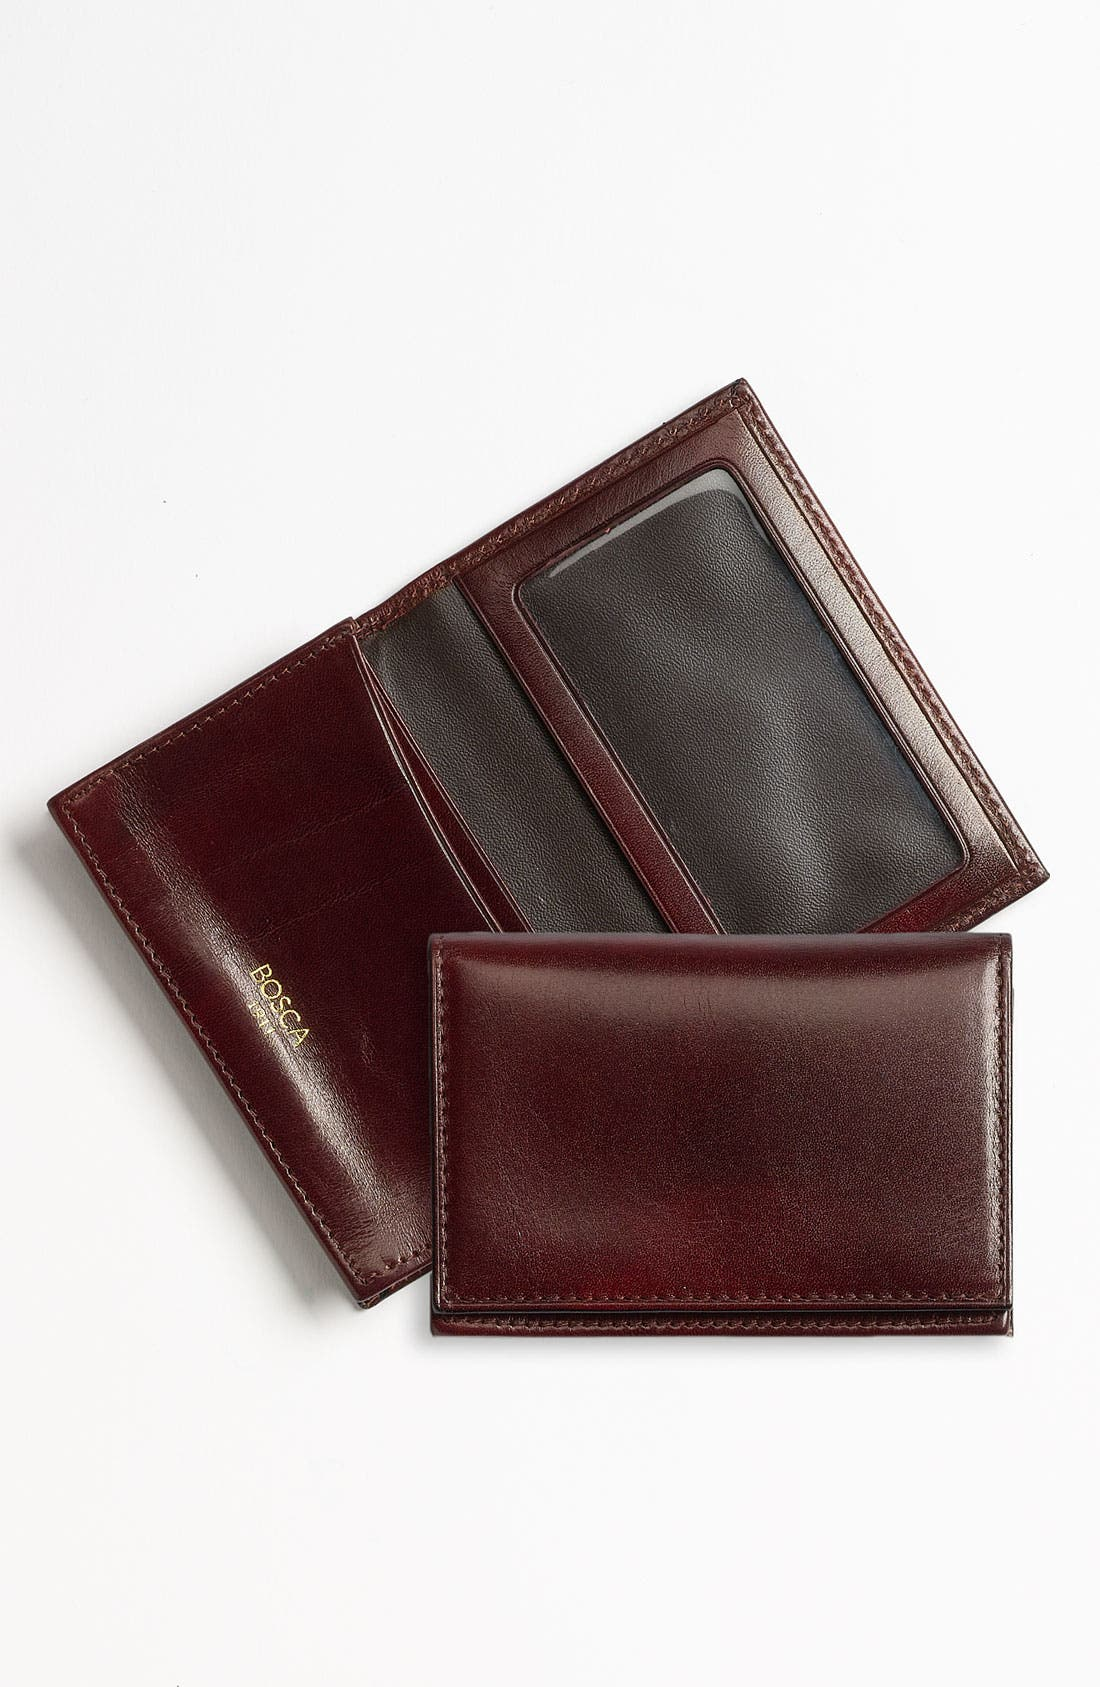 BOSCA Old Leather Gusset Wallet